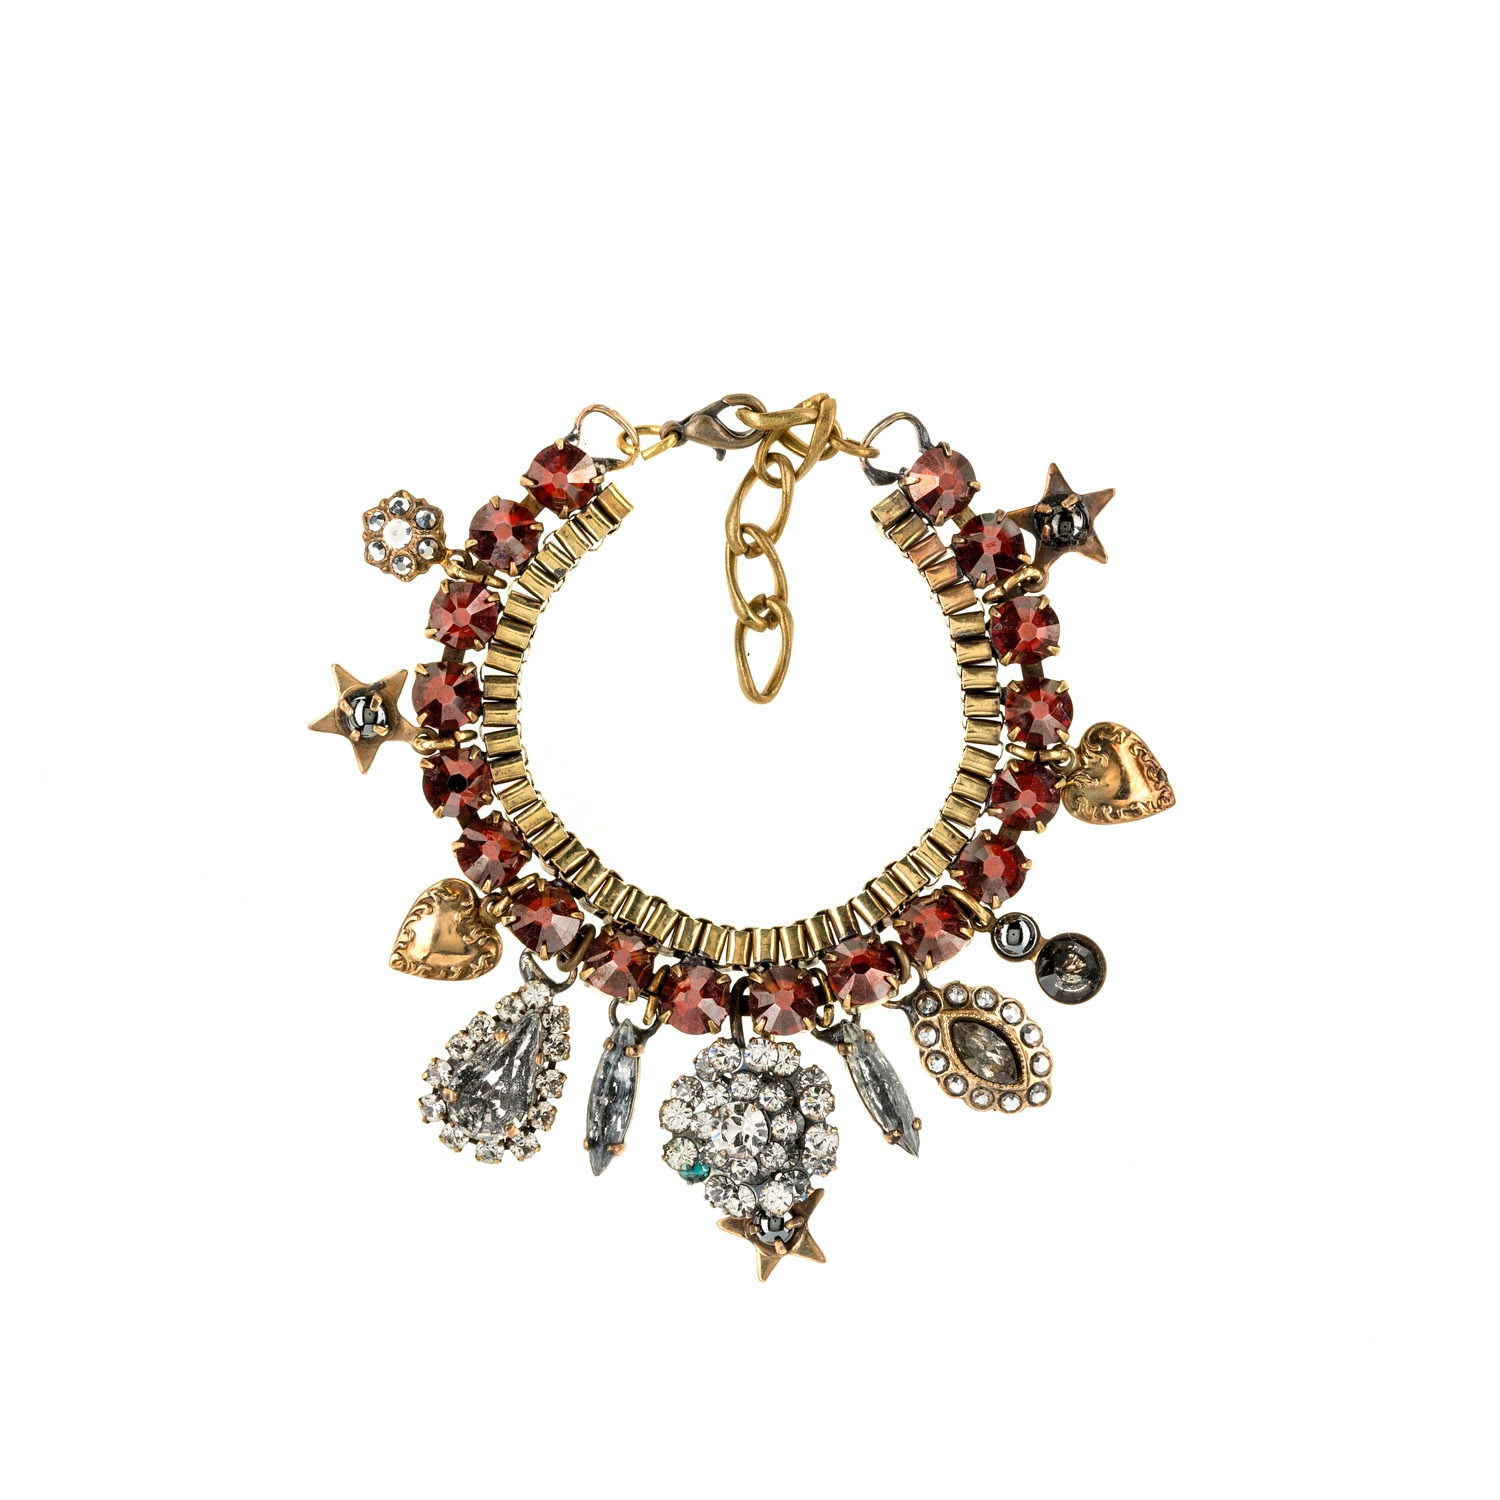 HALO & CO BUNT RED CRYSTAL BRACELET WITH VINTAGE CRYSTAL CHARMS